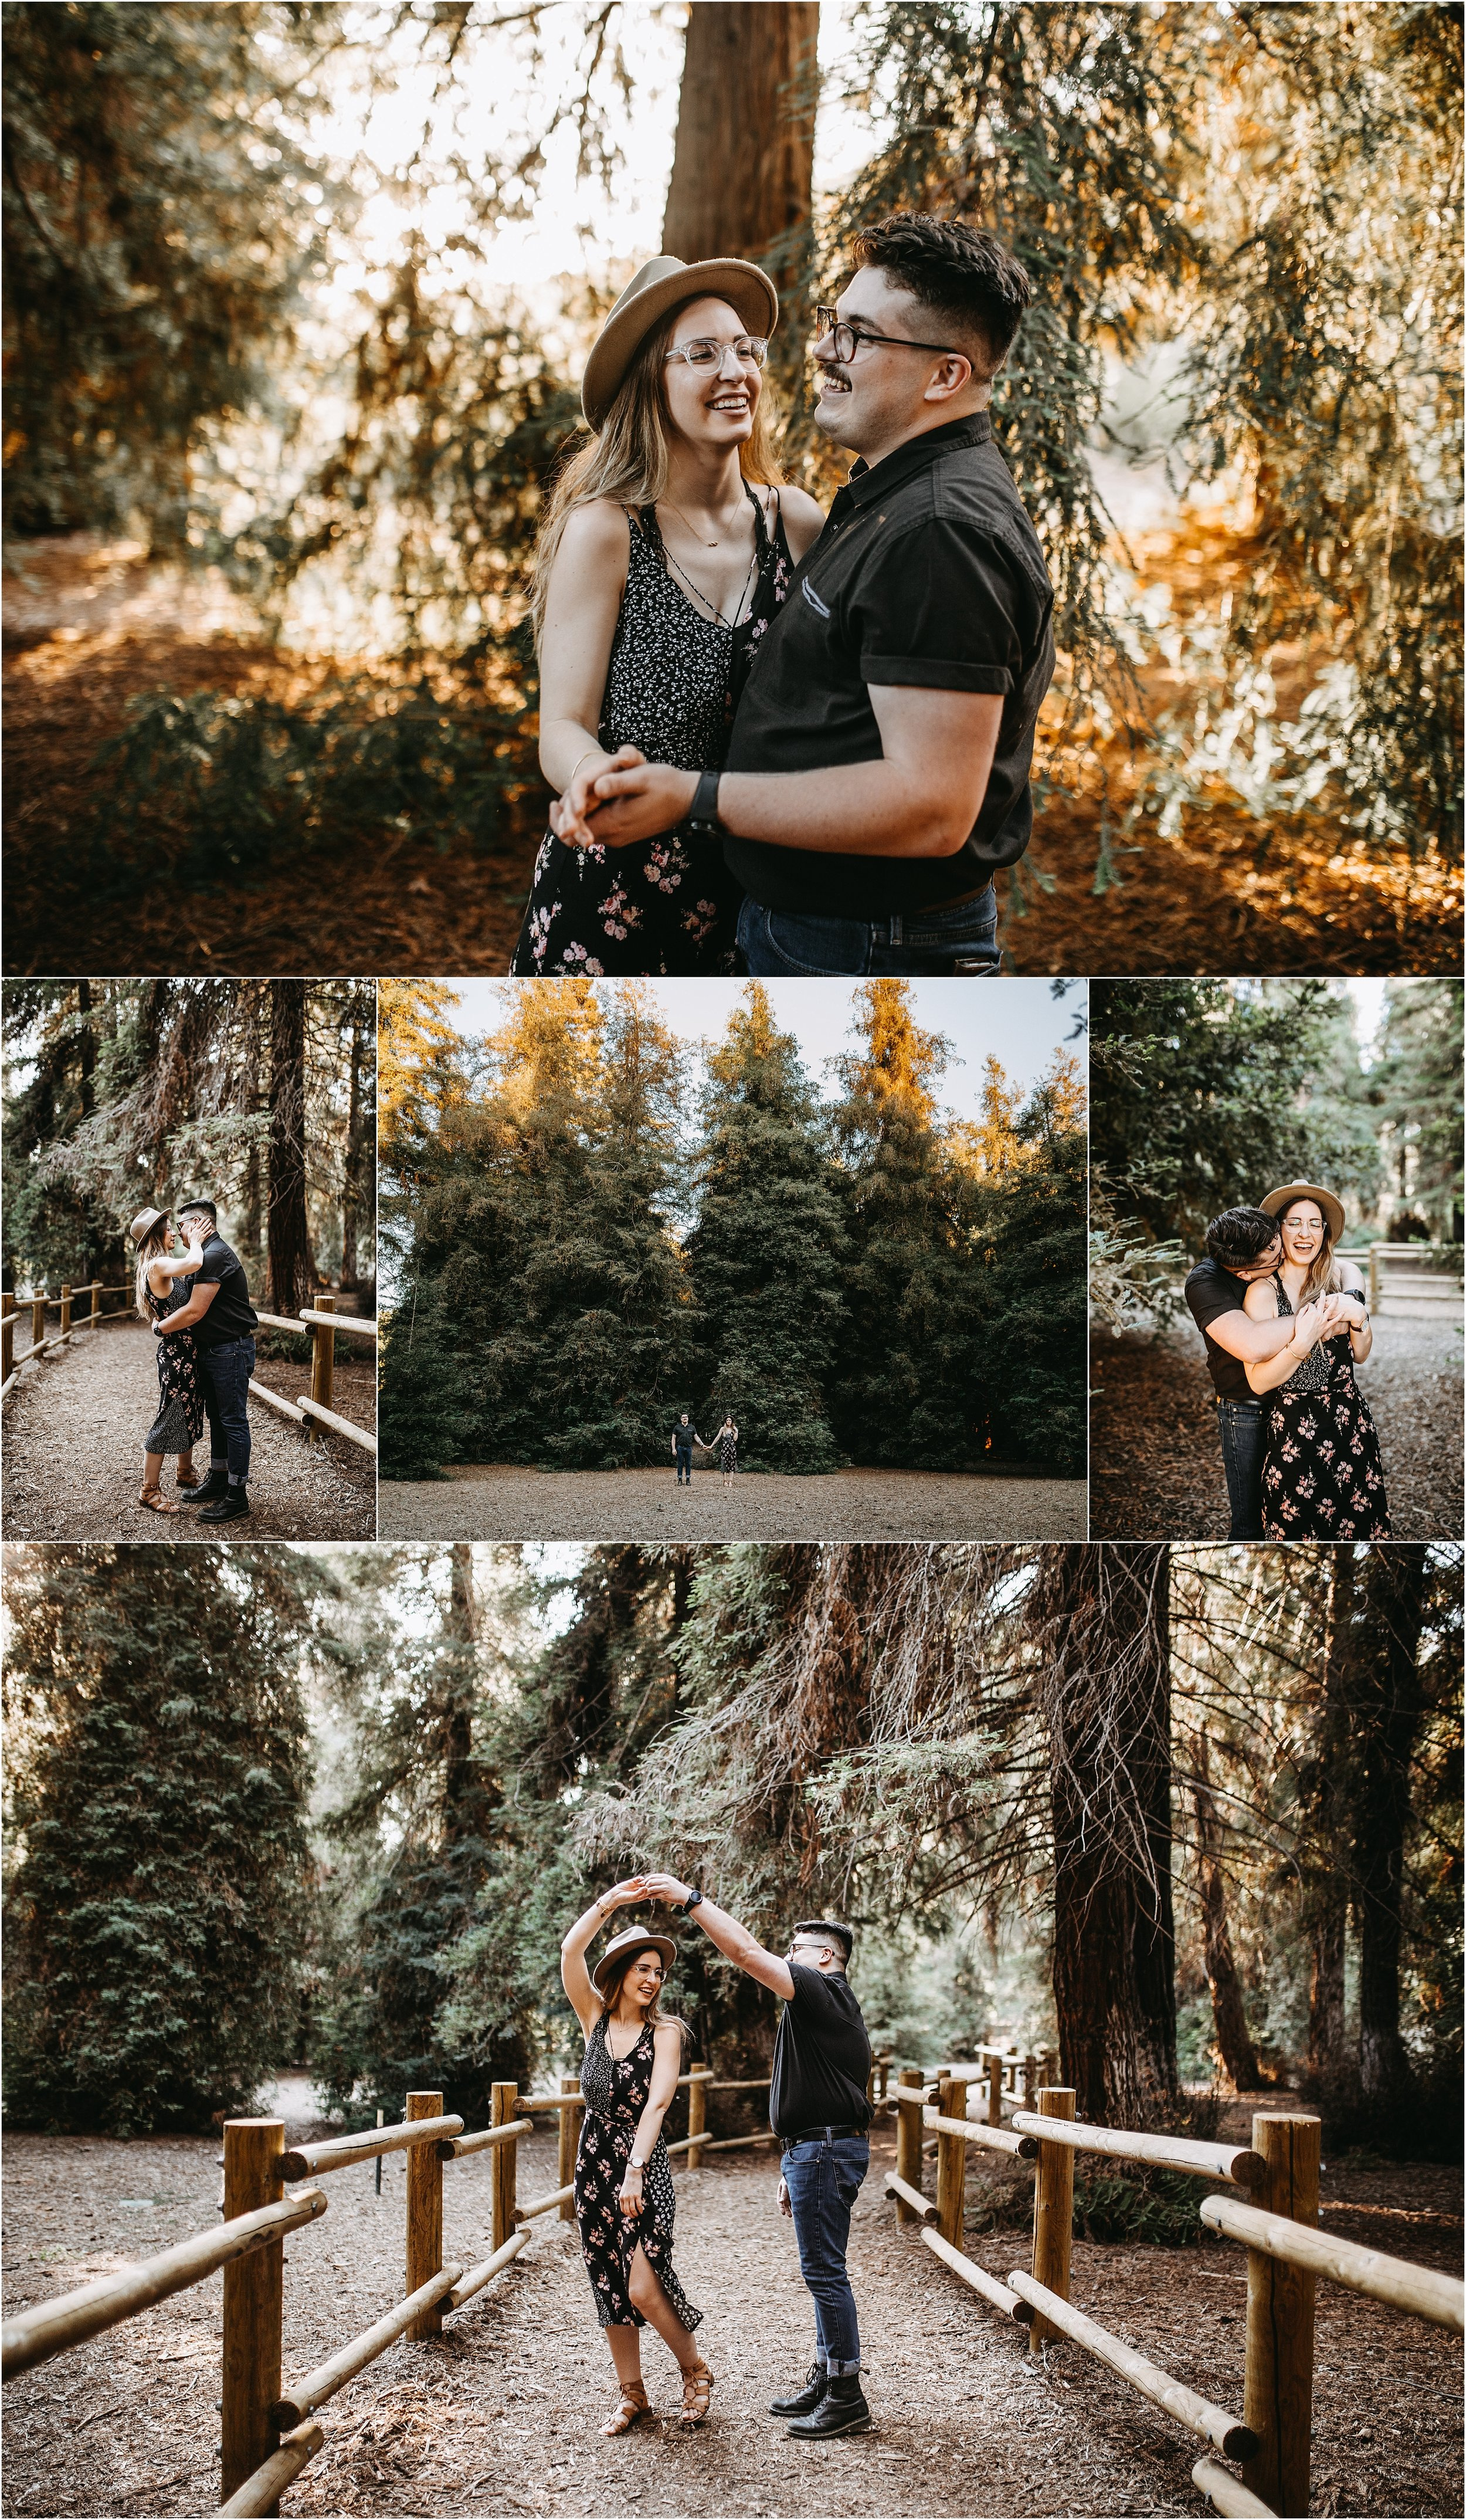 Redwoods-Carbon-Canyon-Regional-Park-Yorba-Linda-Engagement-Photos-Clarisse-Rae-Southern-California-Wedding-Photographer-&-Videographer